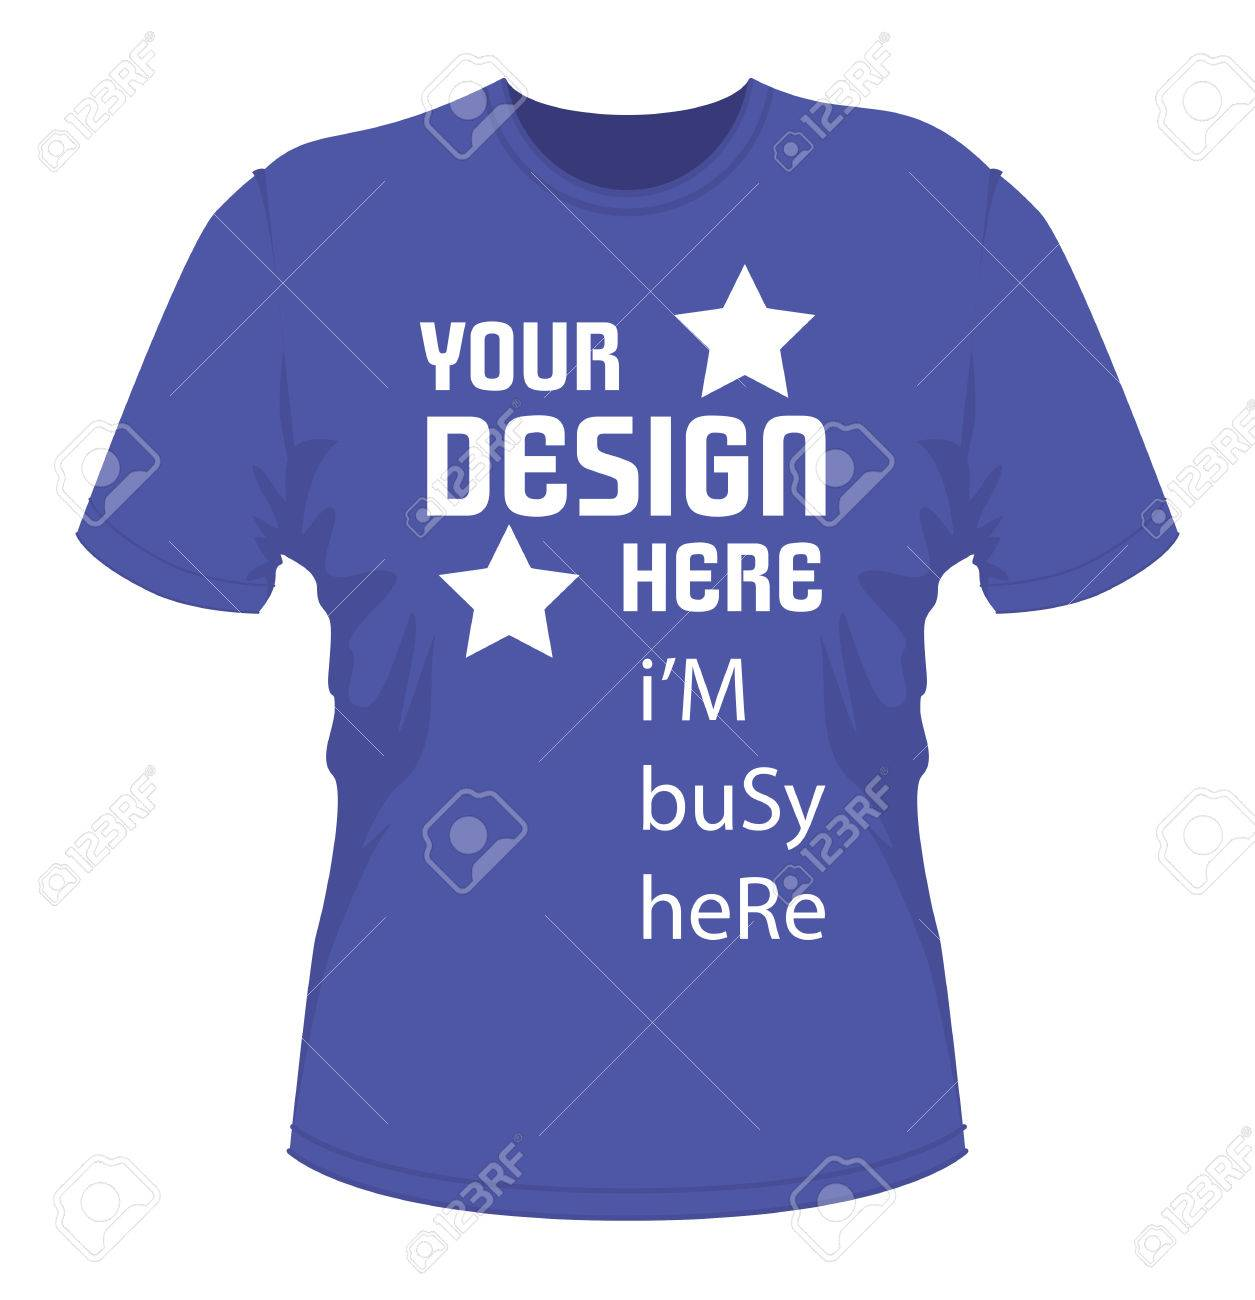 Shirt design eps - T Shirt Design With Text Vector Eps File Fully Editable Stock Vector 42537565